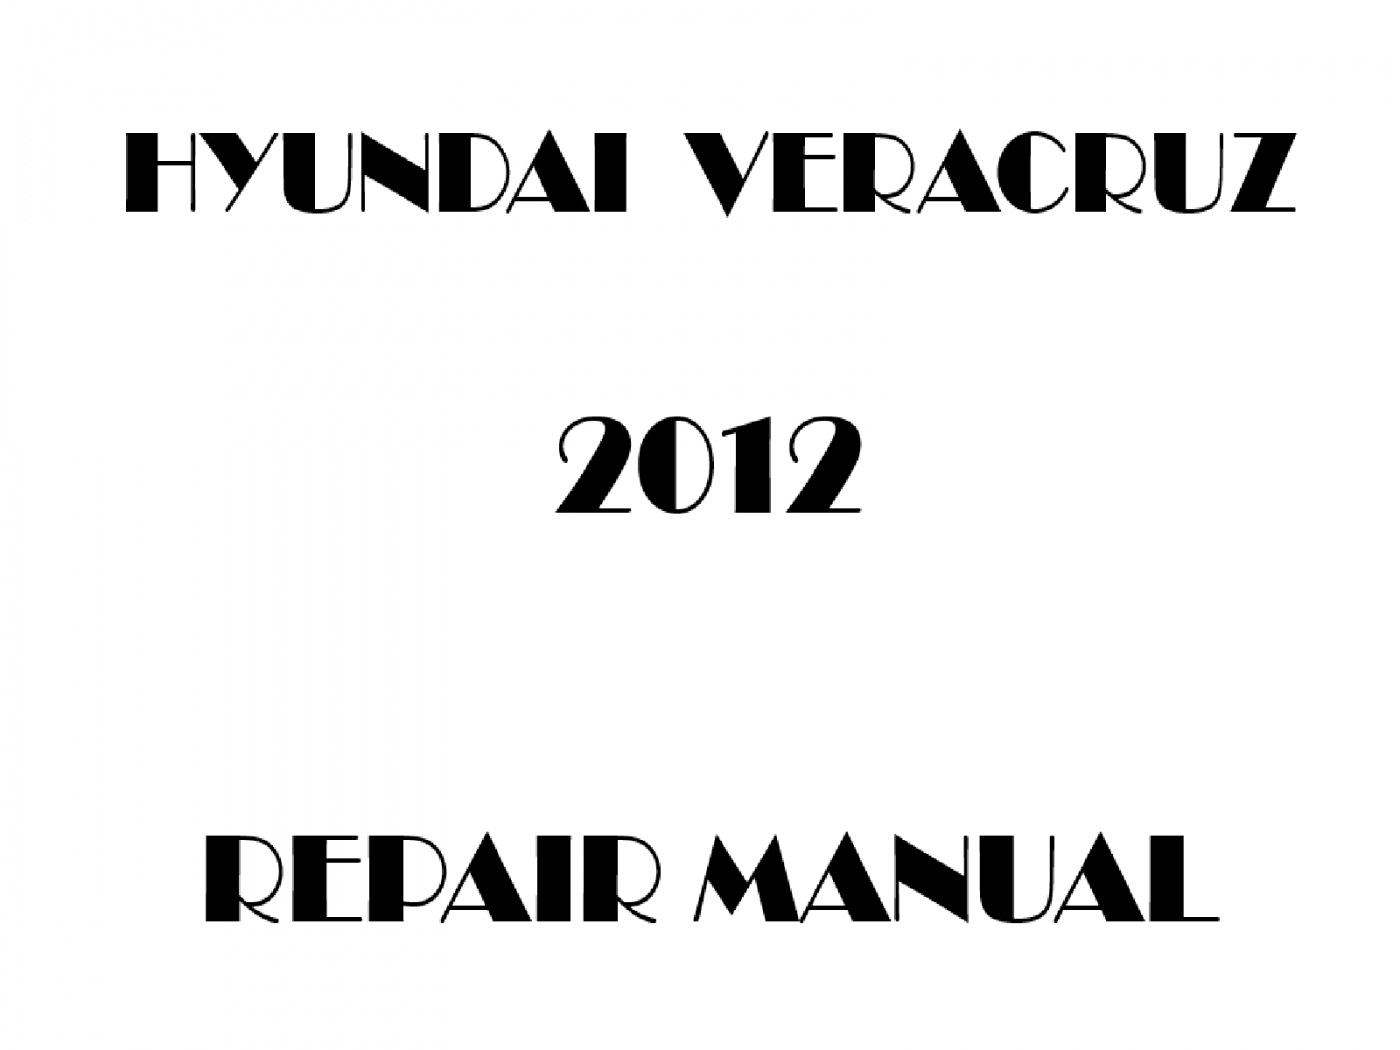 2012 Hyundai Veracruz repair manual